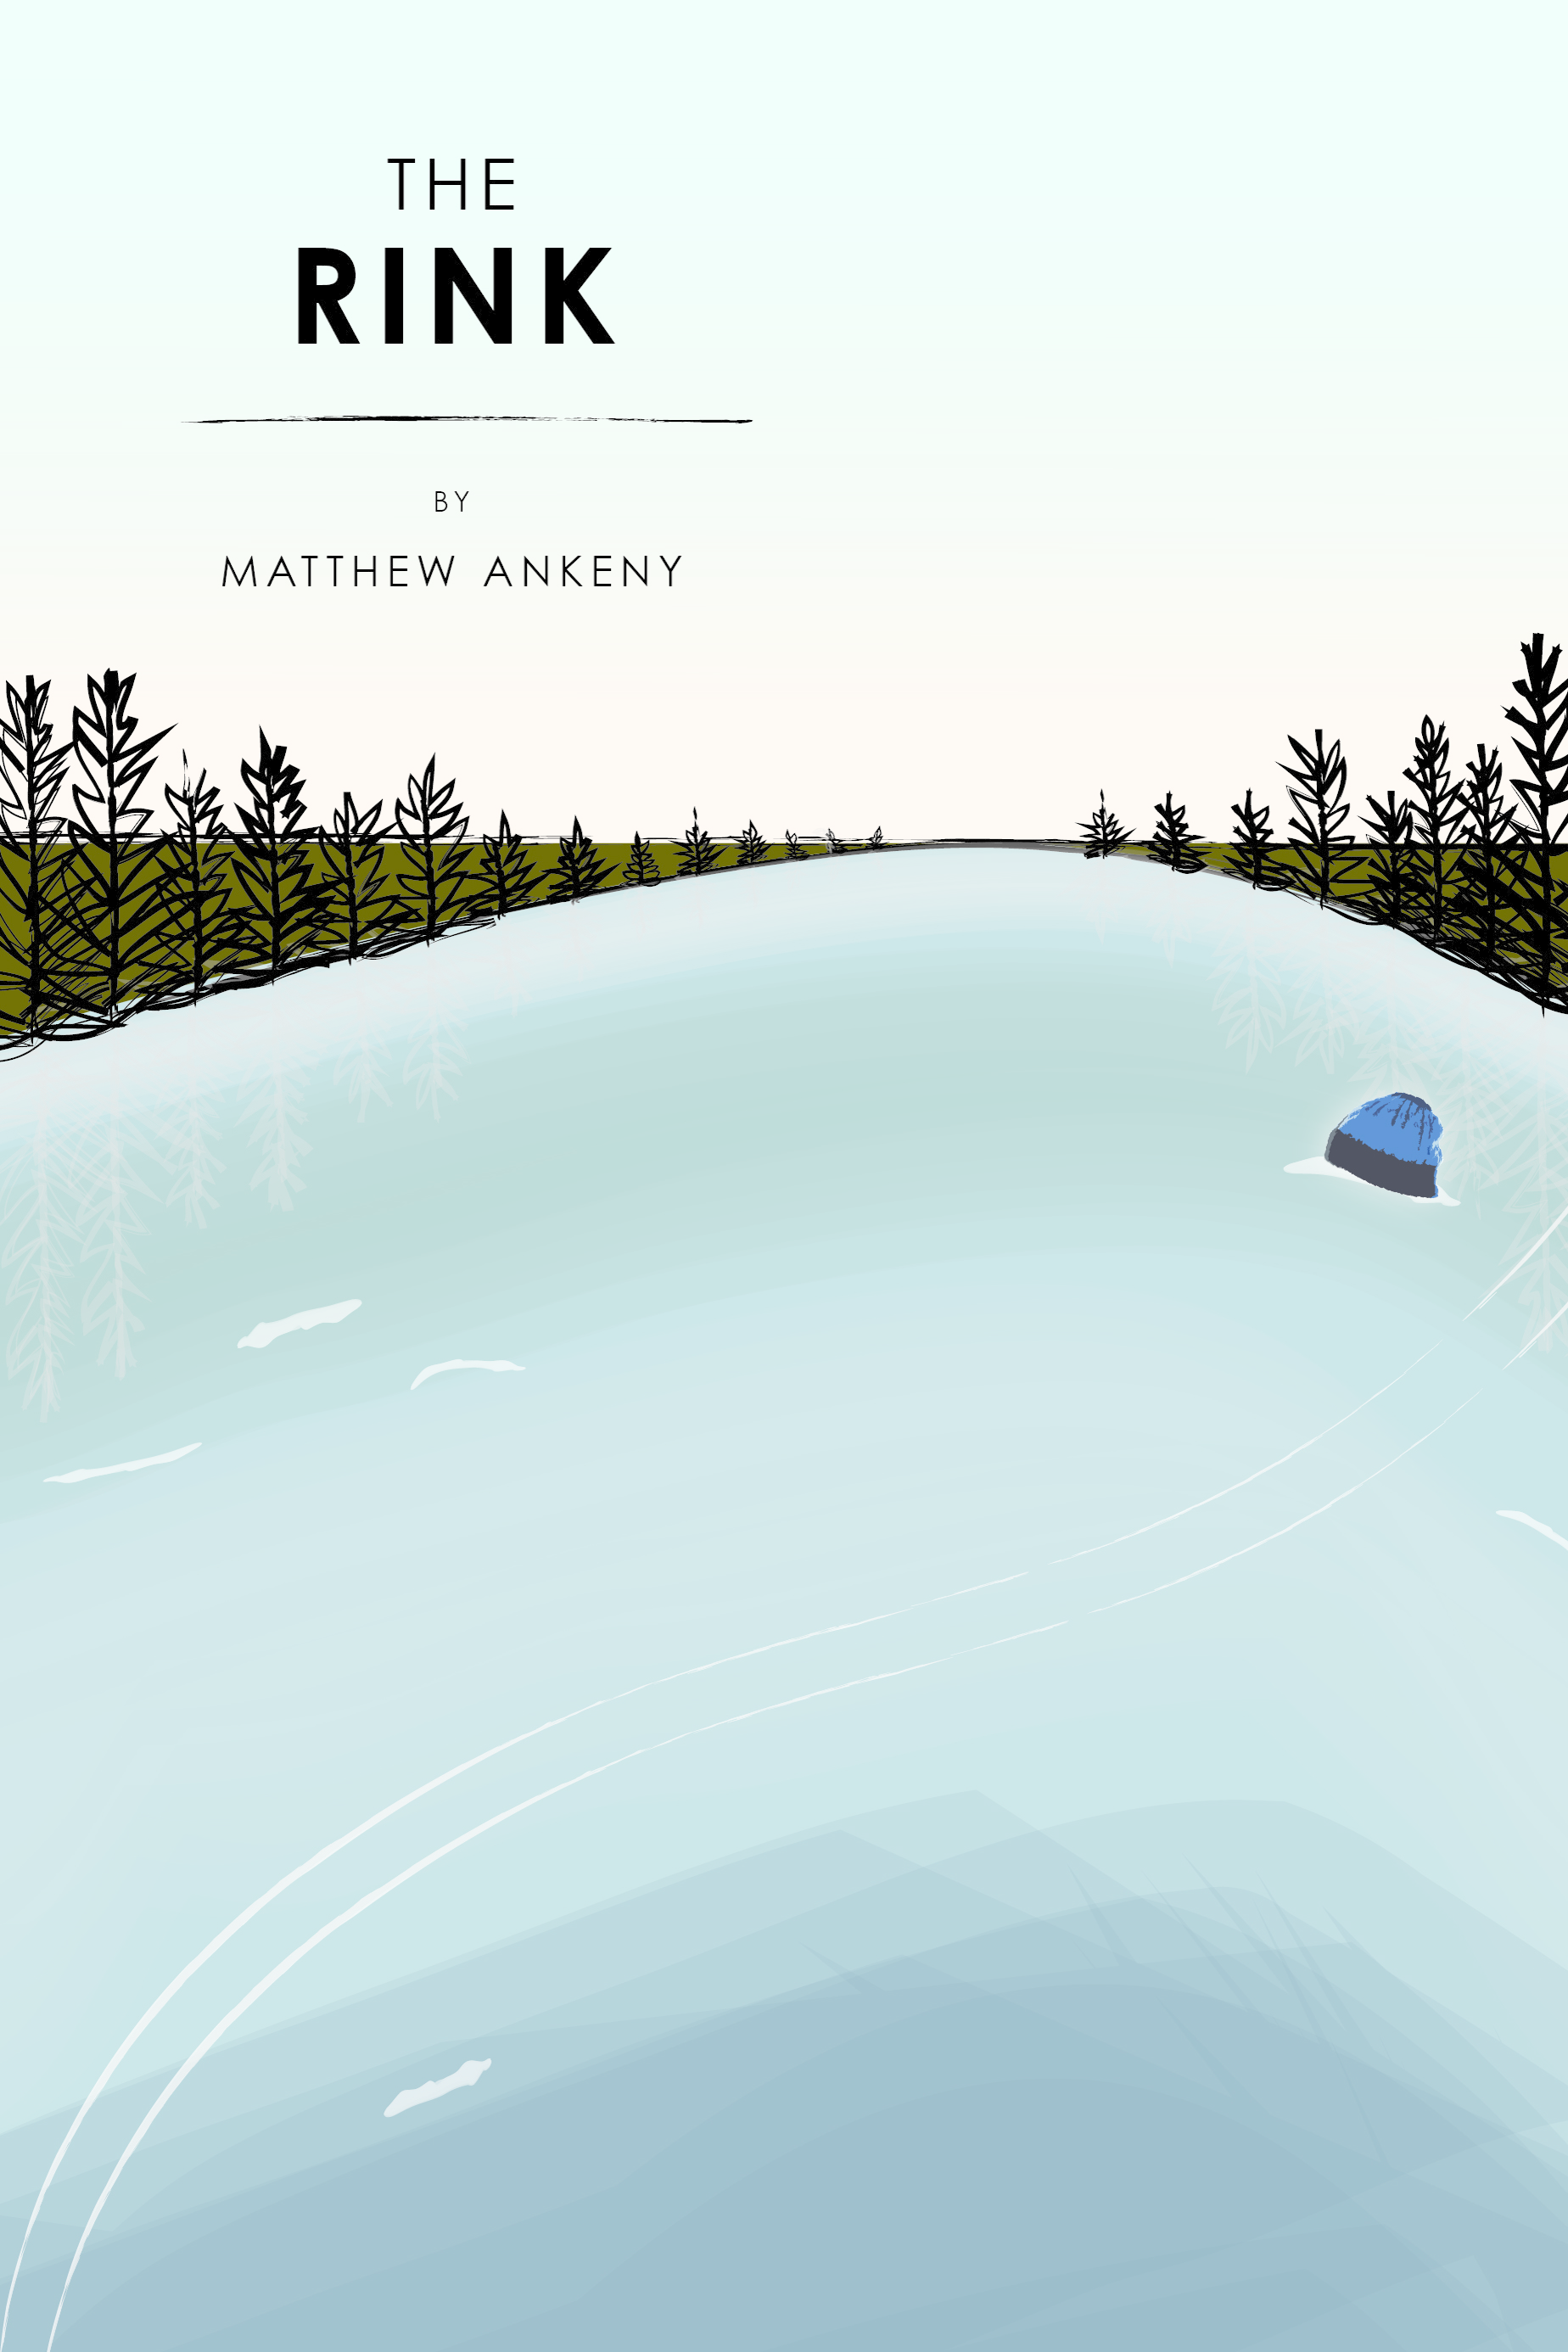 The Rink by Matthew Ankeny, a flash novel from Bartleby Snopes Press